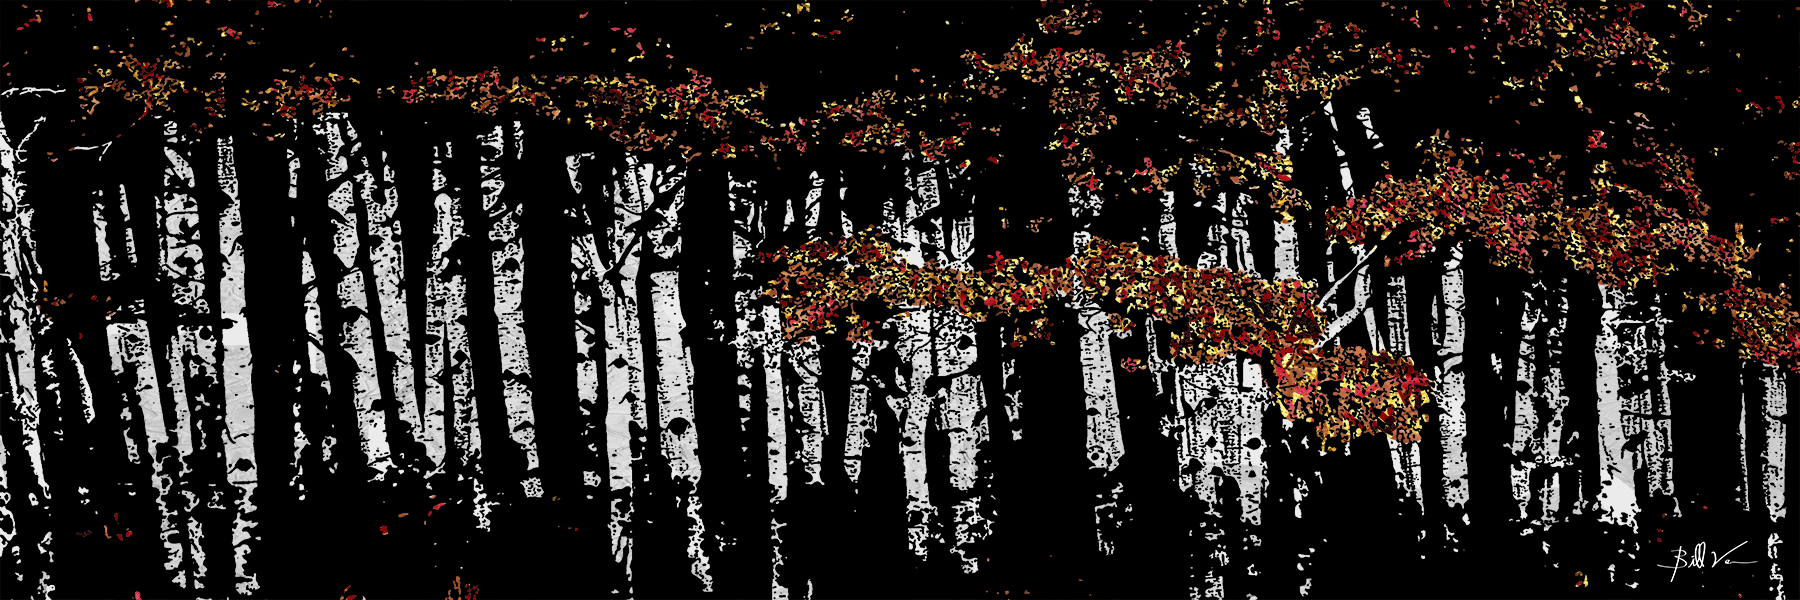 Aspens in a Row 4 x 12.jpg